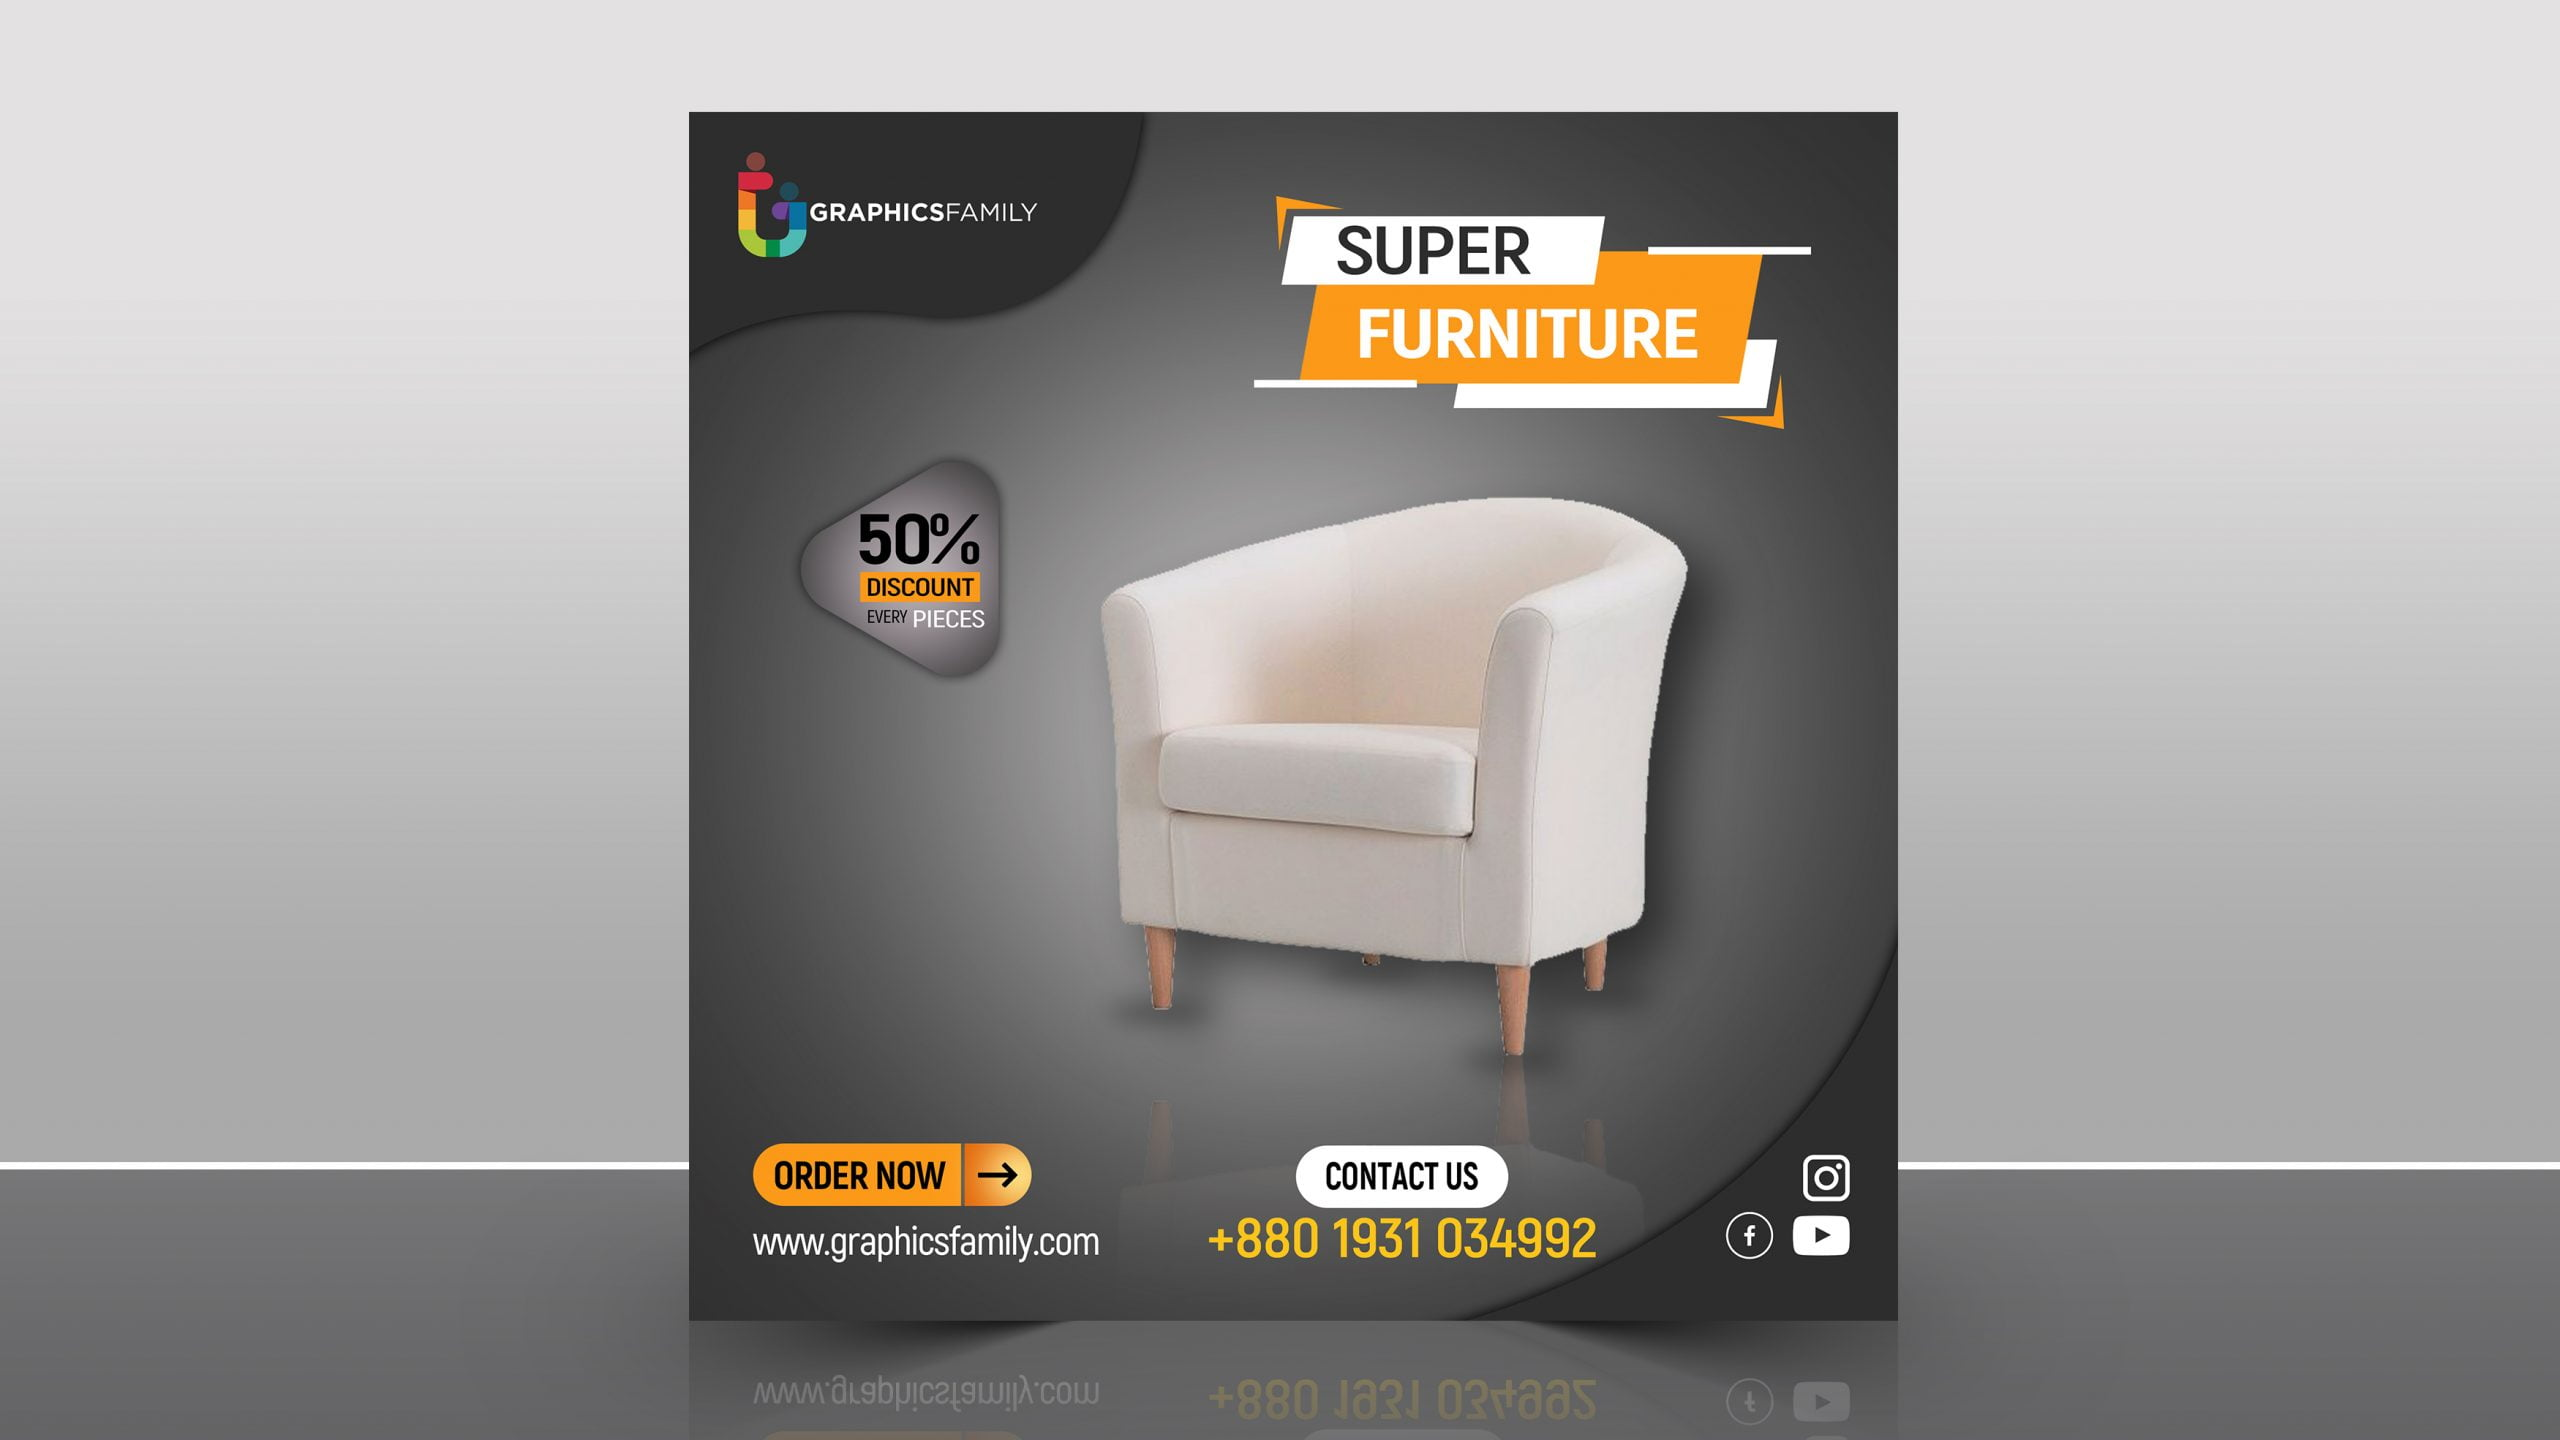 Furniture Store Instagram Post Design Free PSD Download